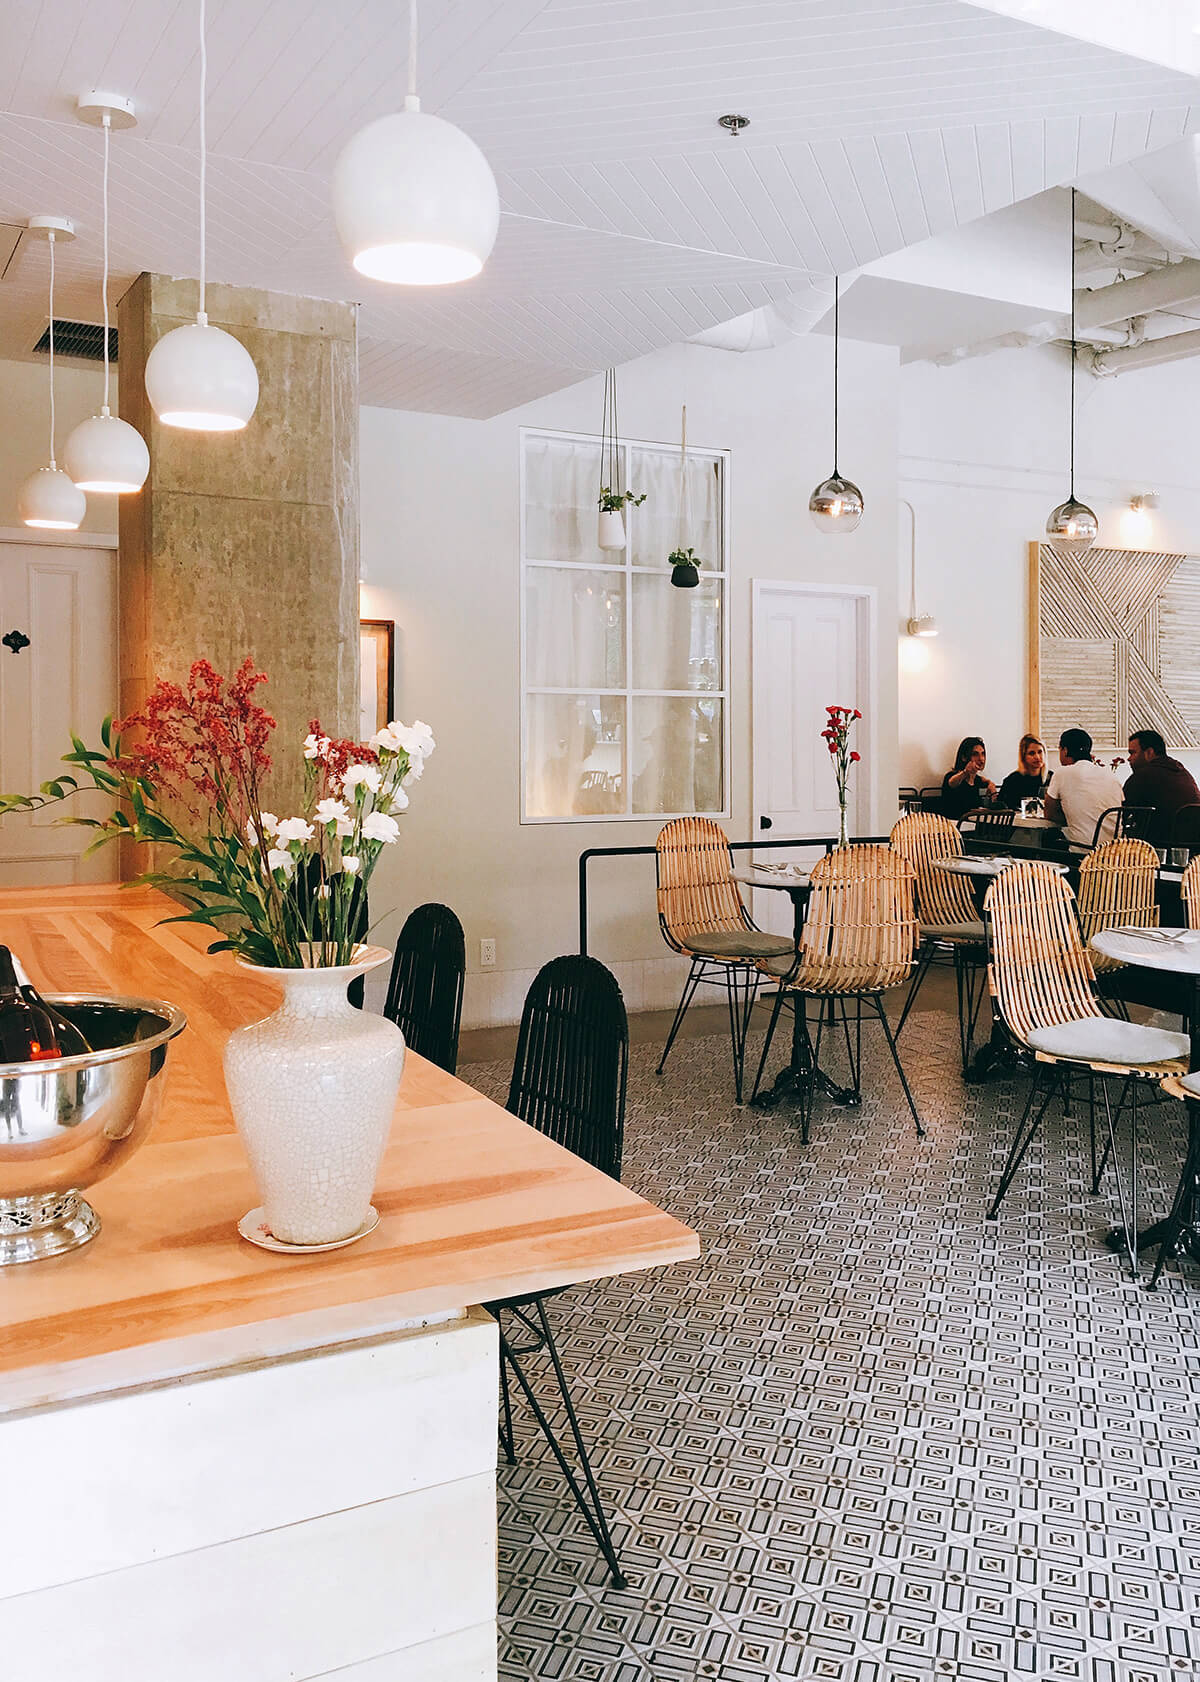 most-instagrammable-restaurants-montreal © Will Travel for Food